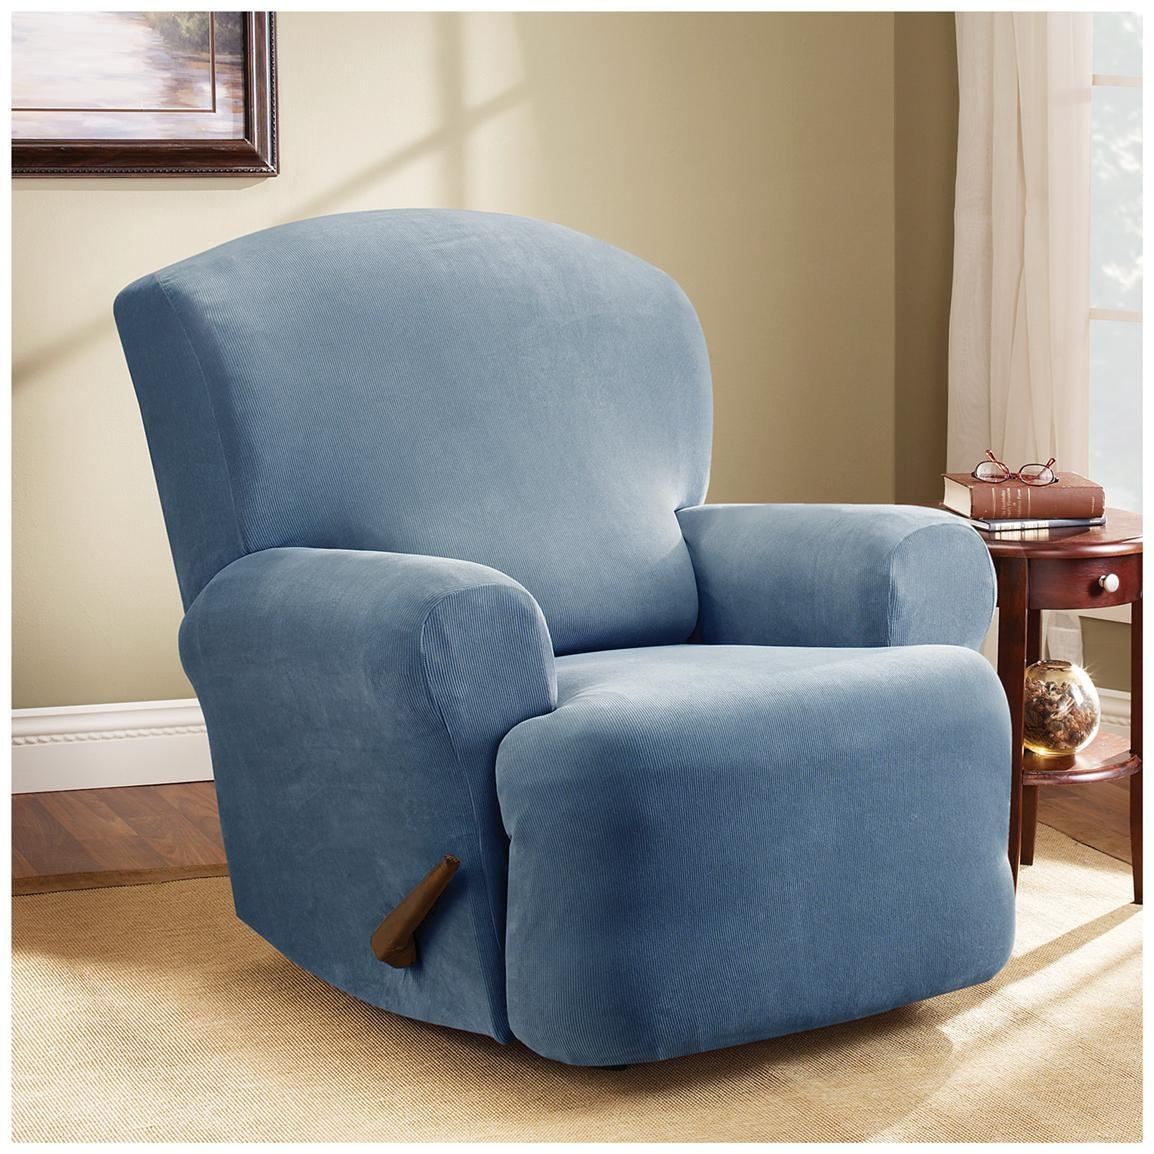 Sofa Slipcovers For Recliners 20 Ideas Of Stretch Covers For Recliners | Sofa Ideas